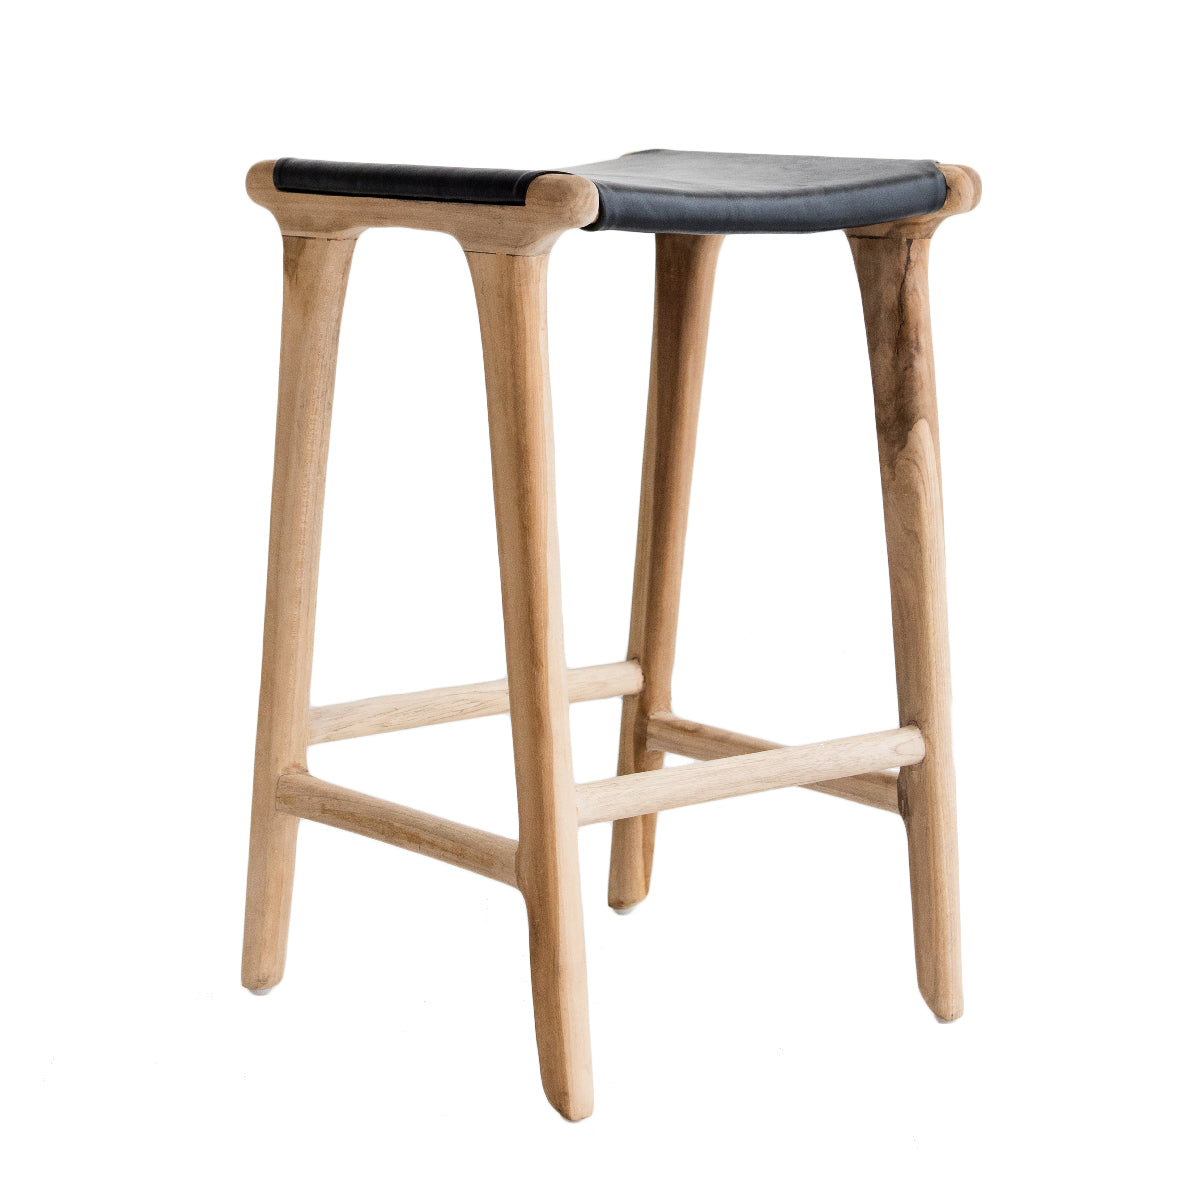 Bella Bar Stool - Black Leather